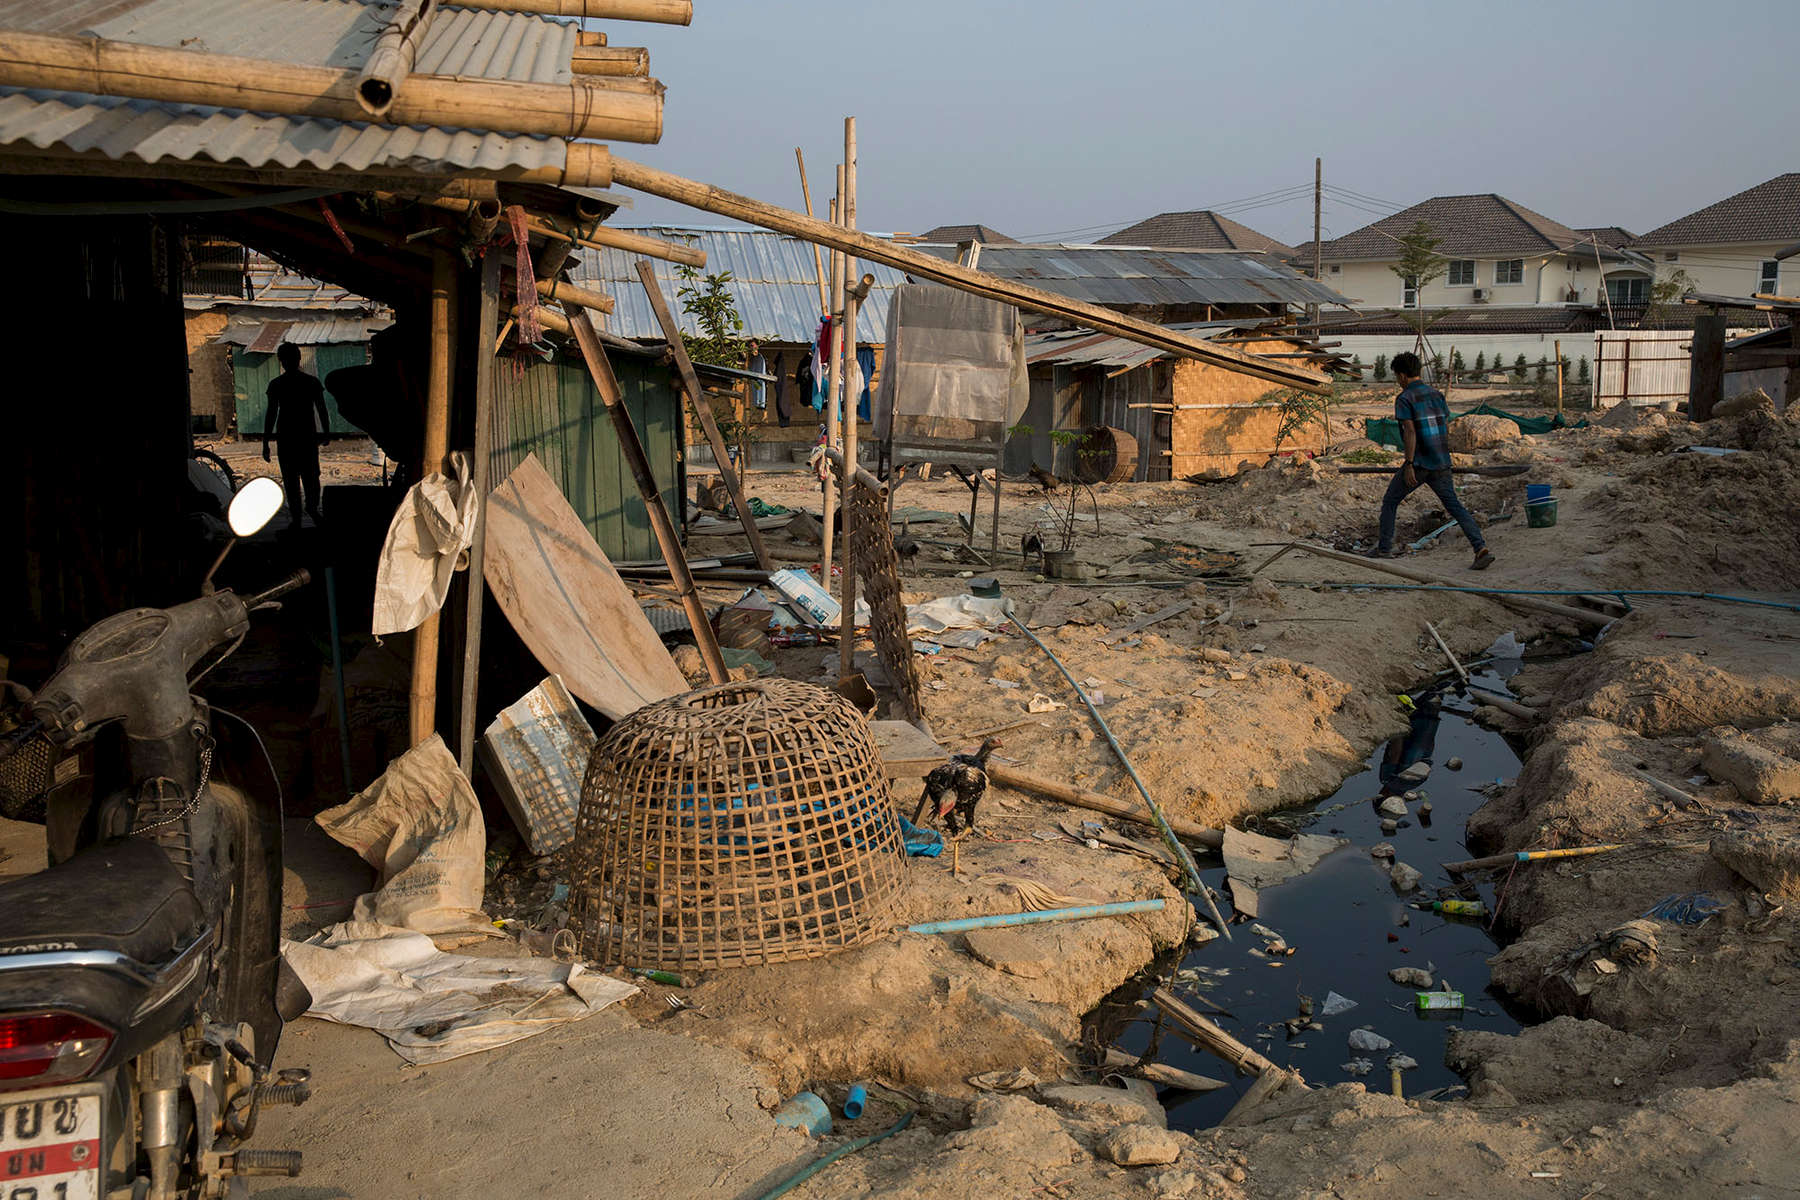 Standing water and sewage pose health problems for many migrant camps.